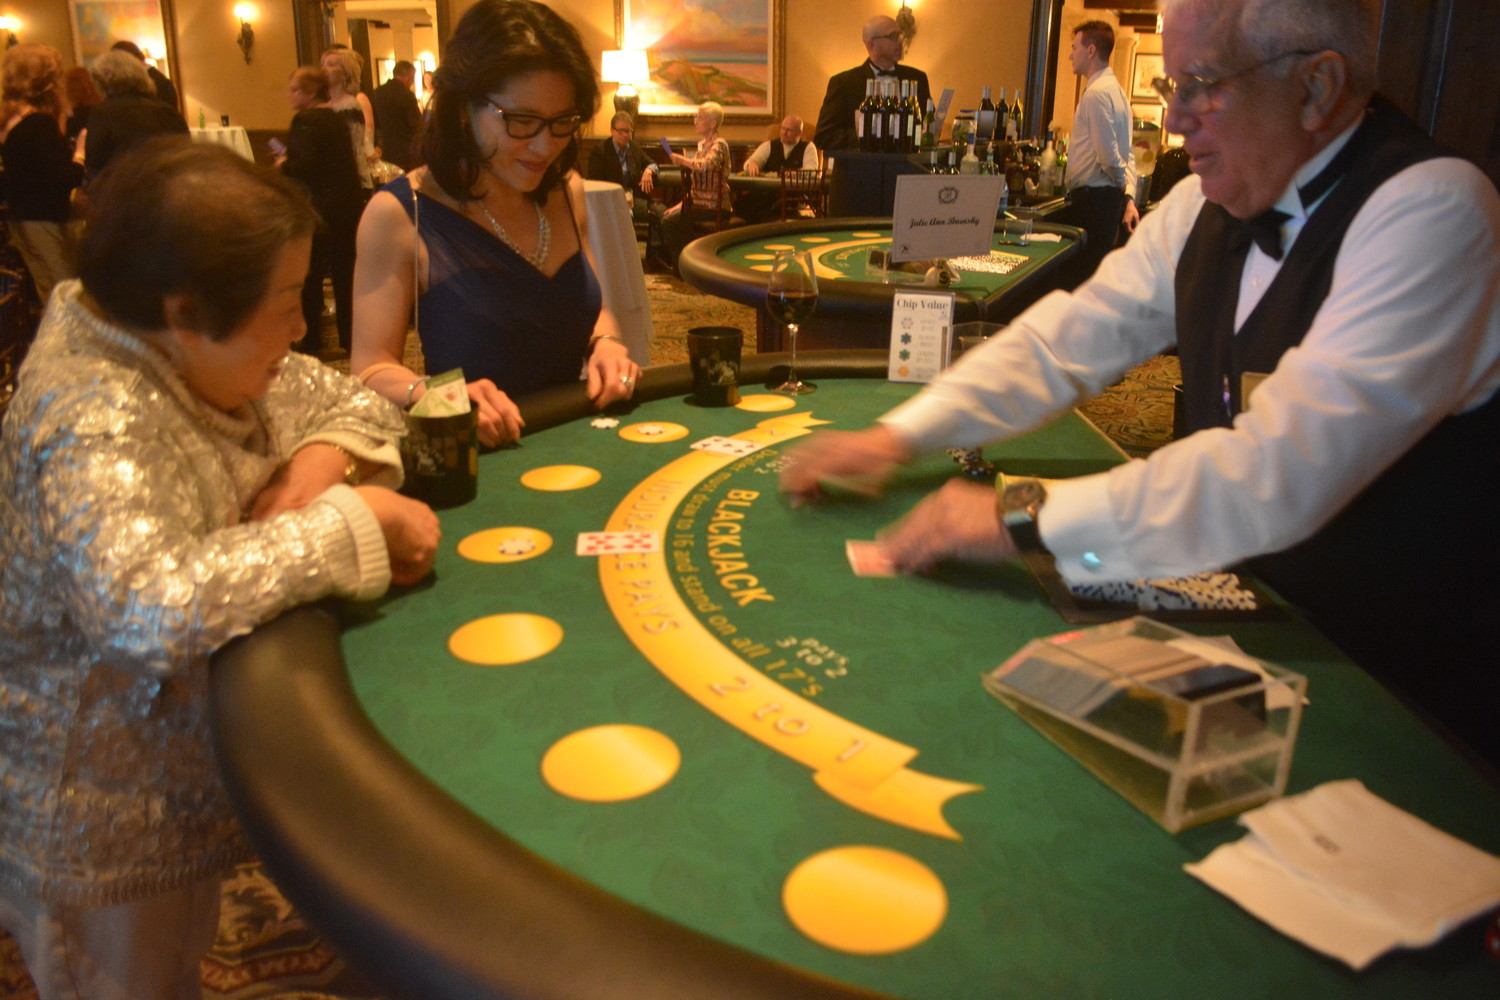 Guests enjoy the blackjack table at the Aylas Acre's Casino Night on the Greens.